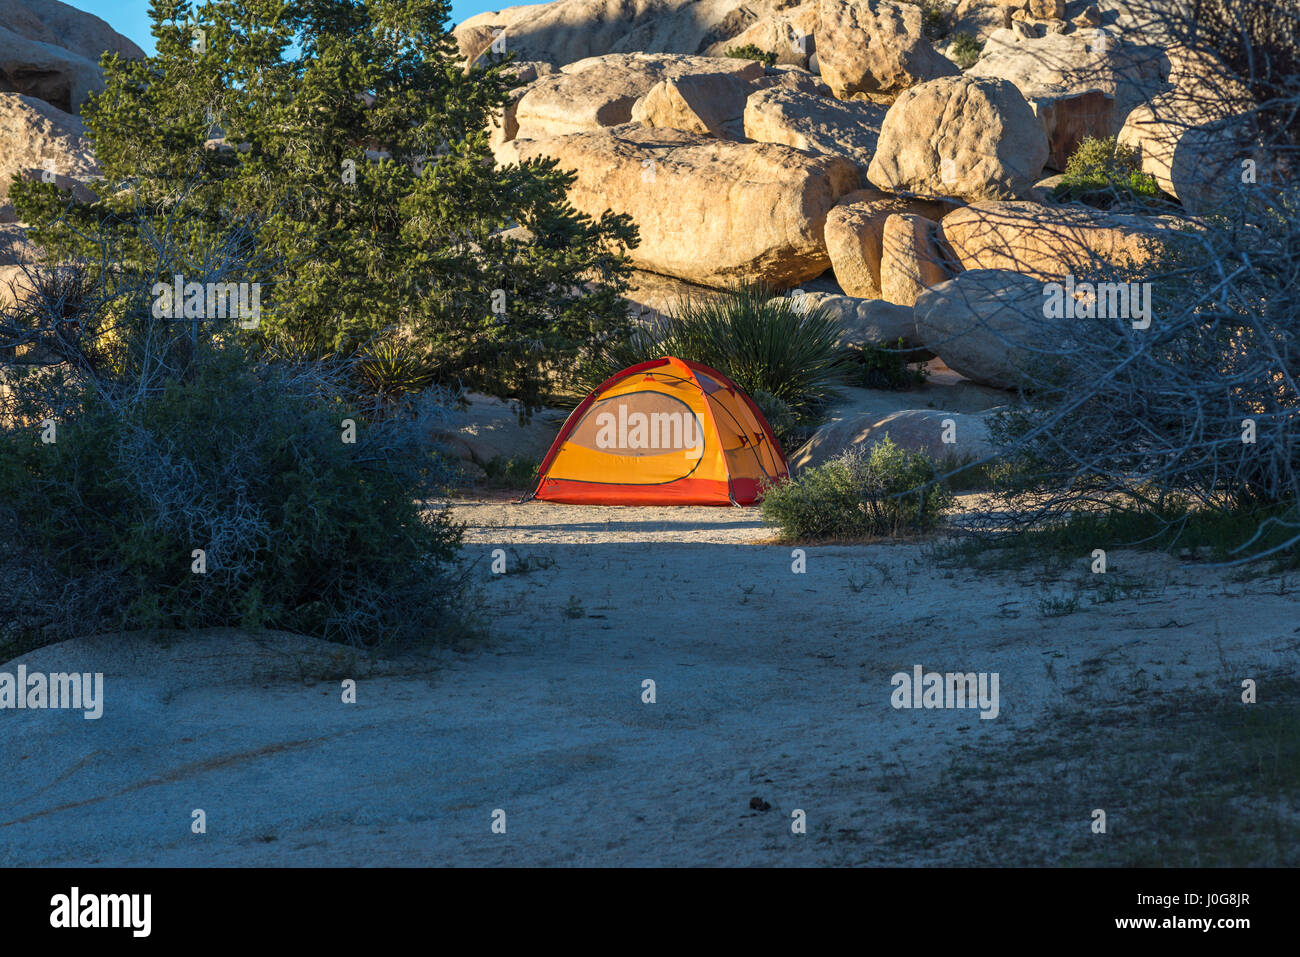 Camping tent at Joshua Tree National Park, California, USA. - Stock Image